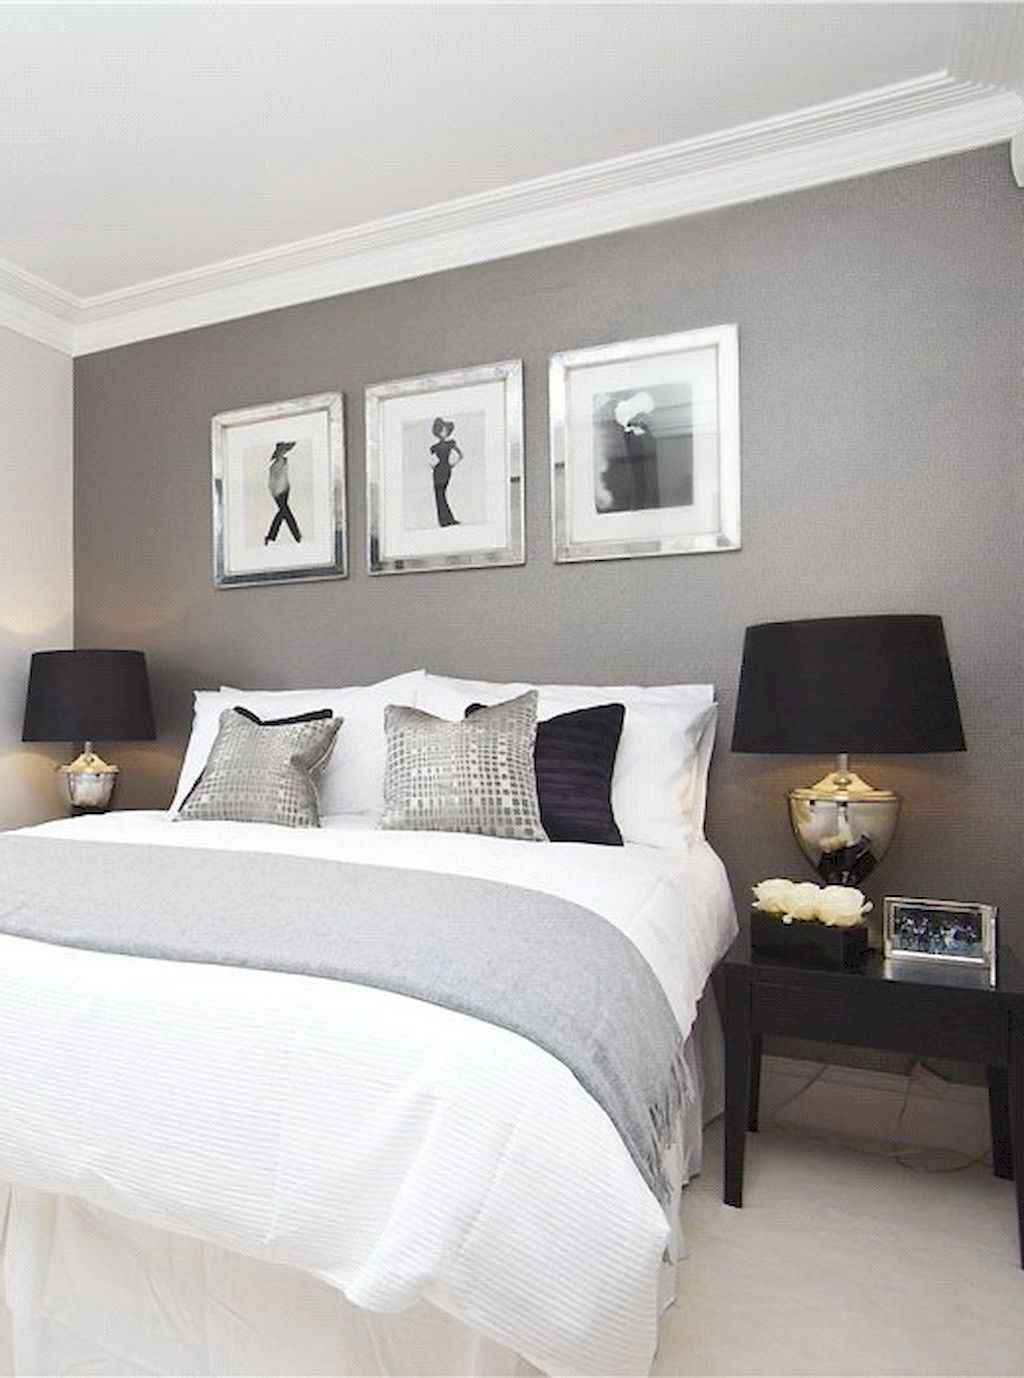 Awesome bedroom decoration ideas (10)